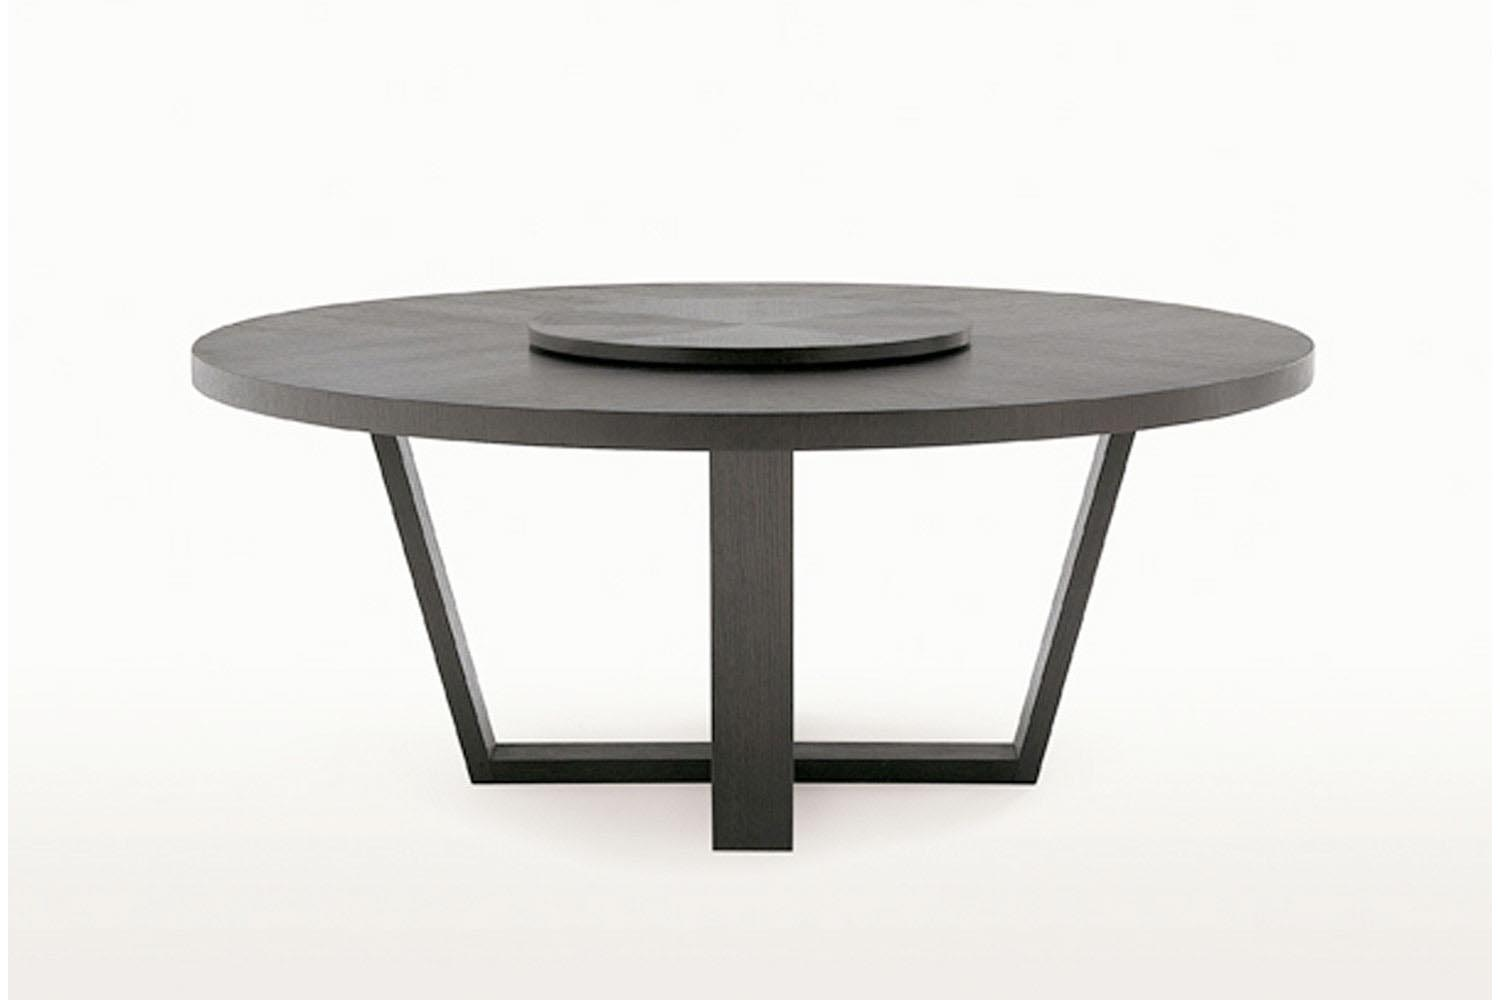 Maxalto Sofa Rund Xilos Table By Antonio Citterio For Maxalto Space Furniture